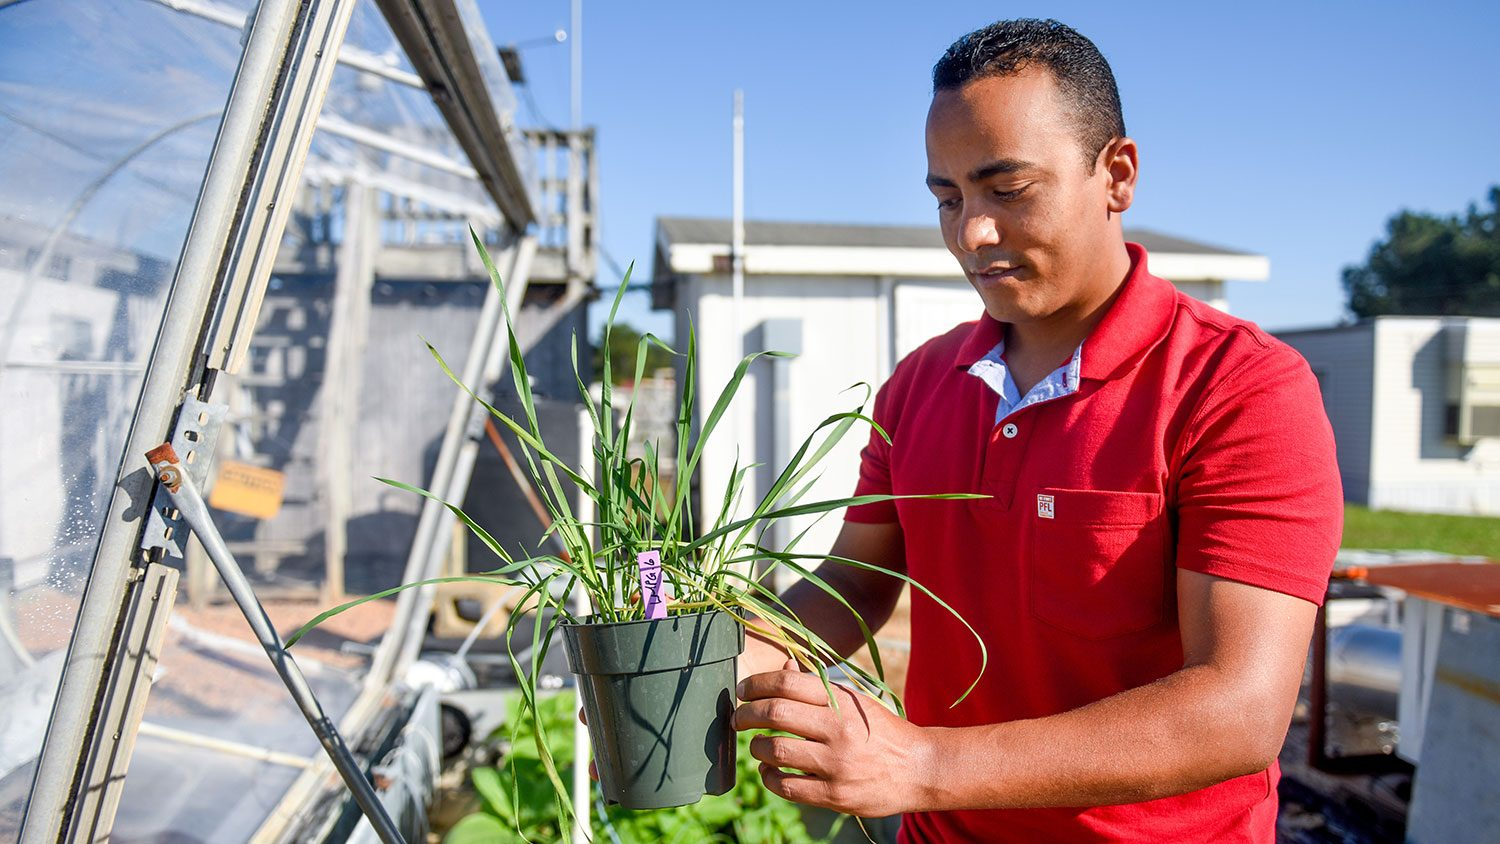 NC State Entomology and plant pathology Ph.D. student Sayed Mashaheet